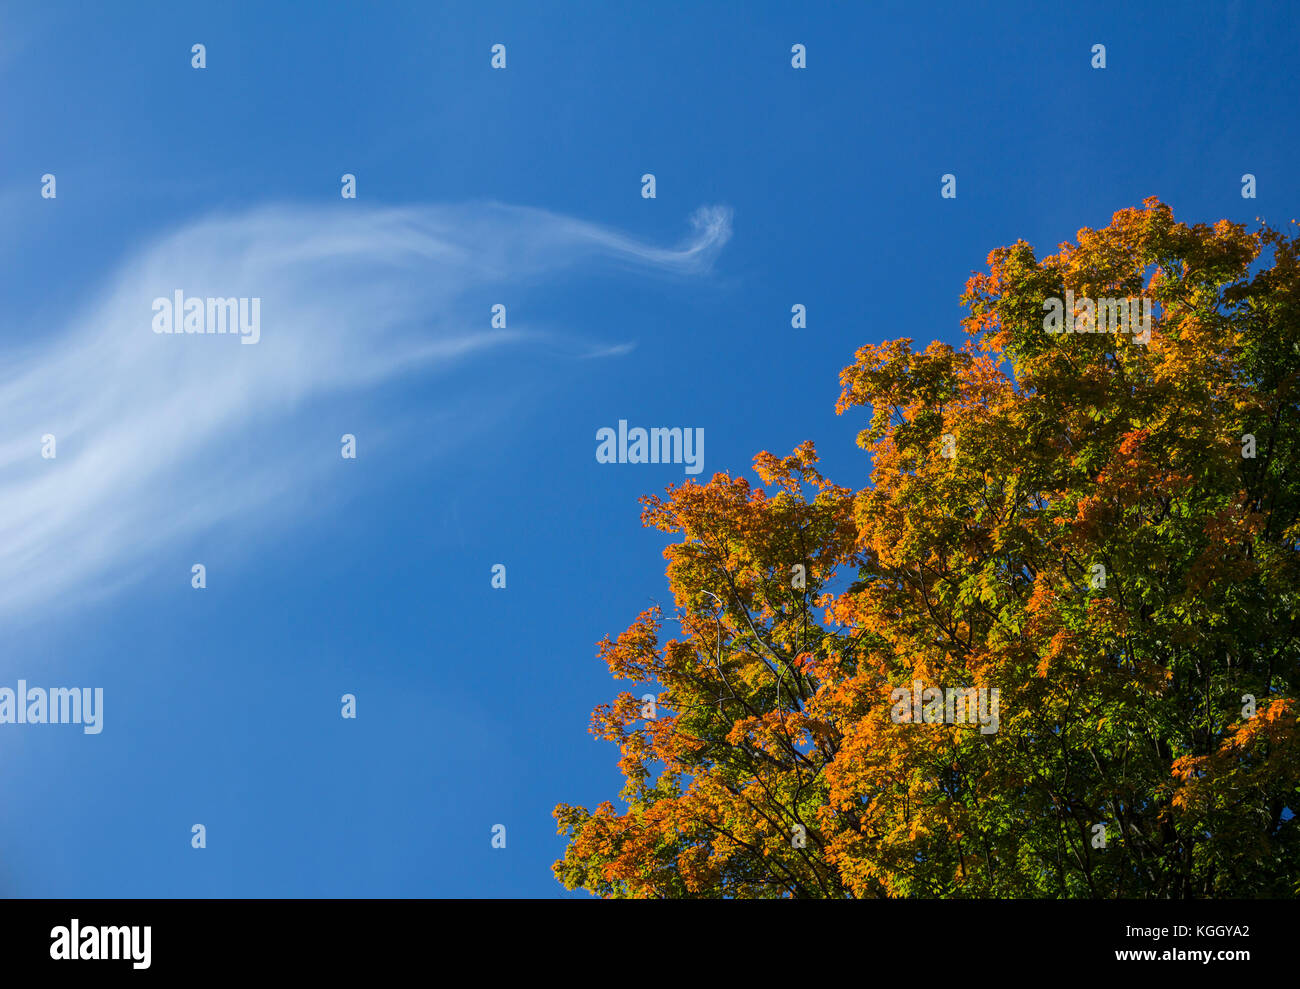 Long wispy cloud in blue sky. Autumnal colors. Tall maple tree. Abstract. - Stock Image